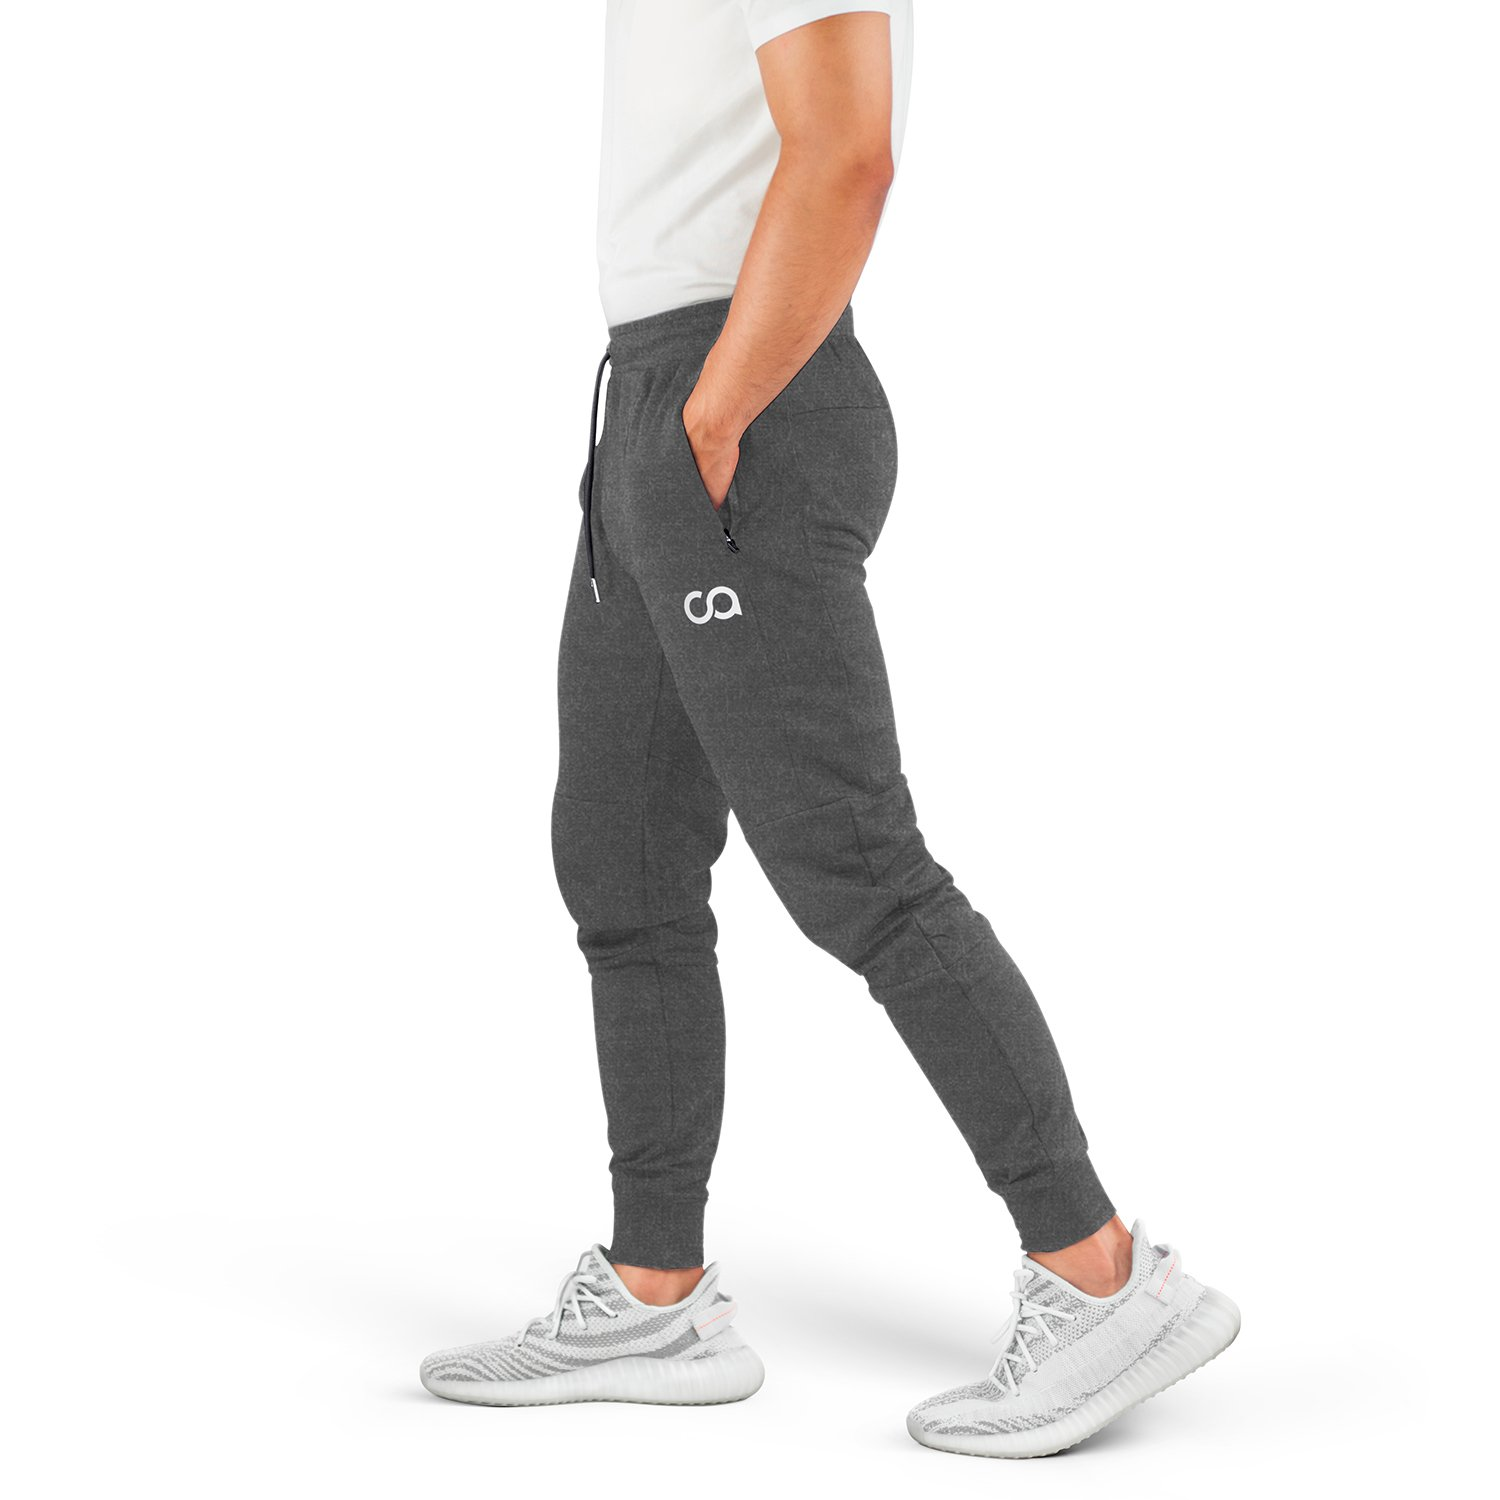 Contour Athletics Men's Joggers (Cruise) Sweatpants Men's Active Sports Running Workout Pants with Zipper Pockets (Heather Grey) (Large) (CA1003-LG) by Contour Athletics